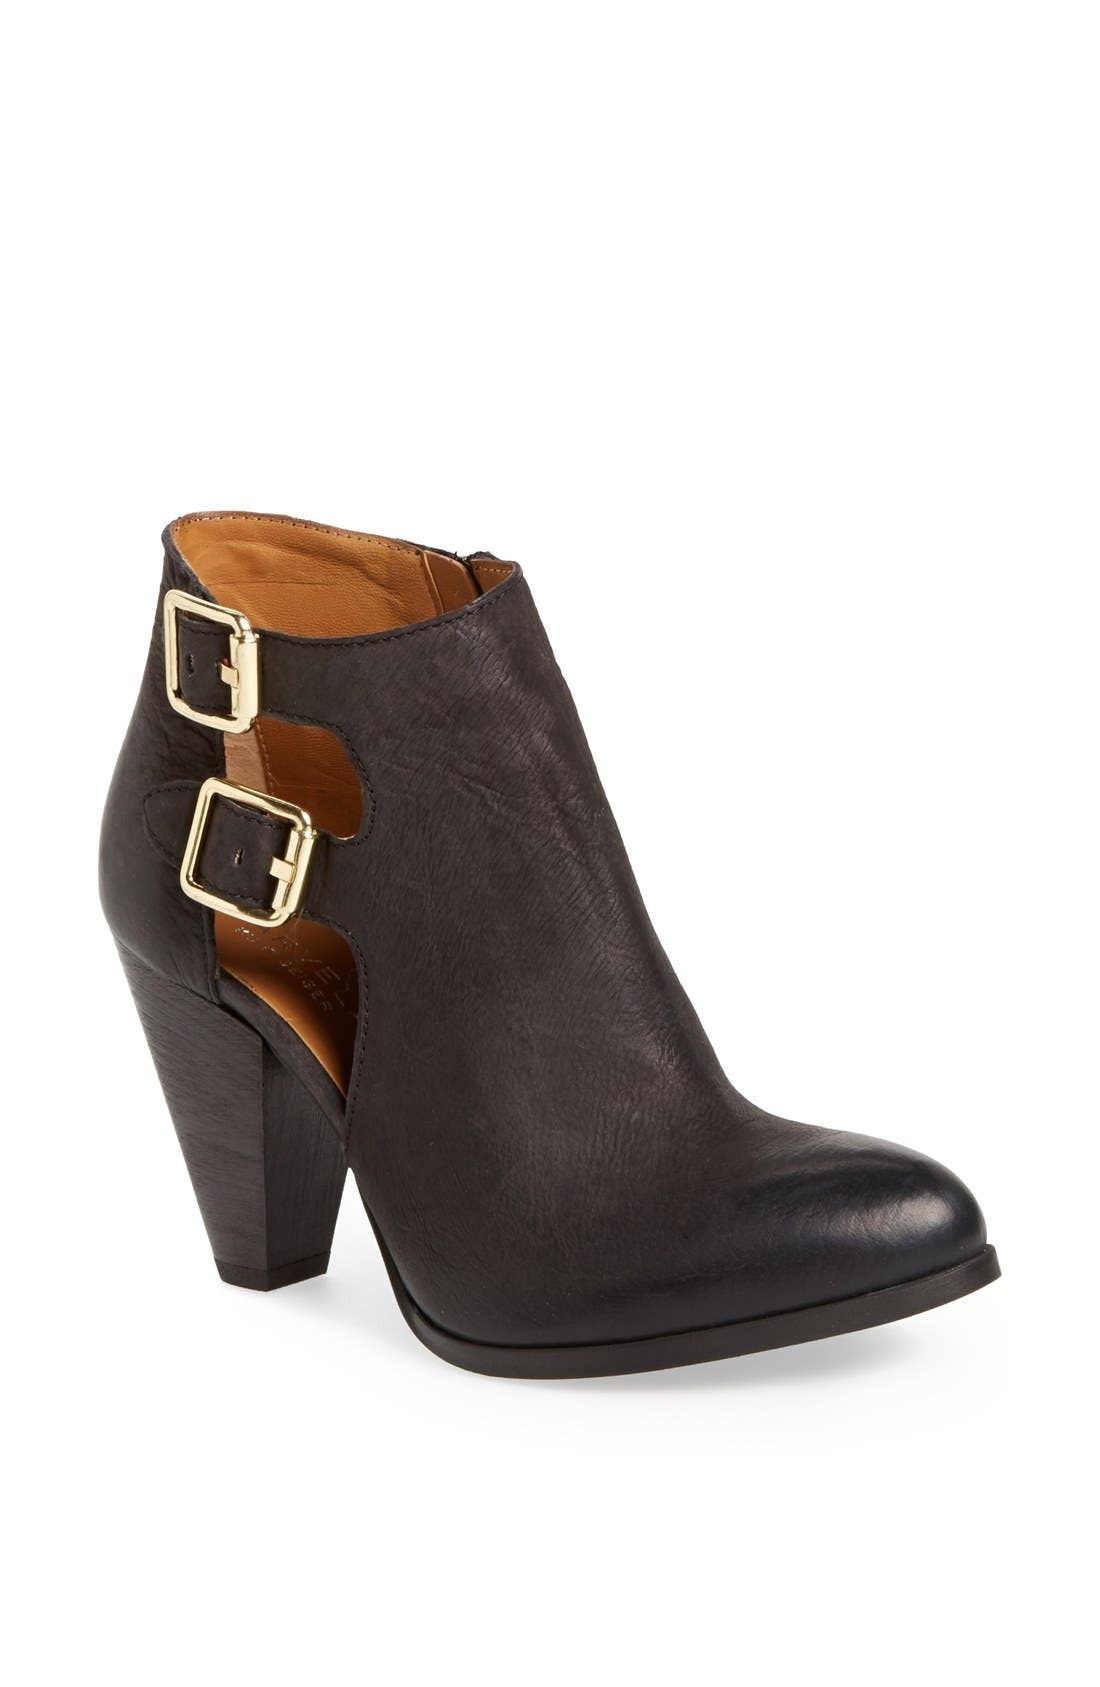 Alternate Image 1 Selected - Carvela Kurt Geiger 'Shylock' Bootie